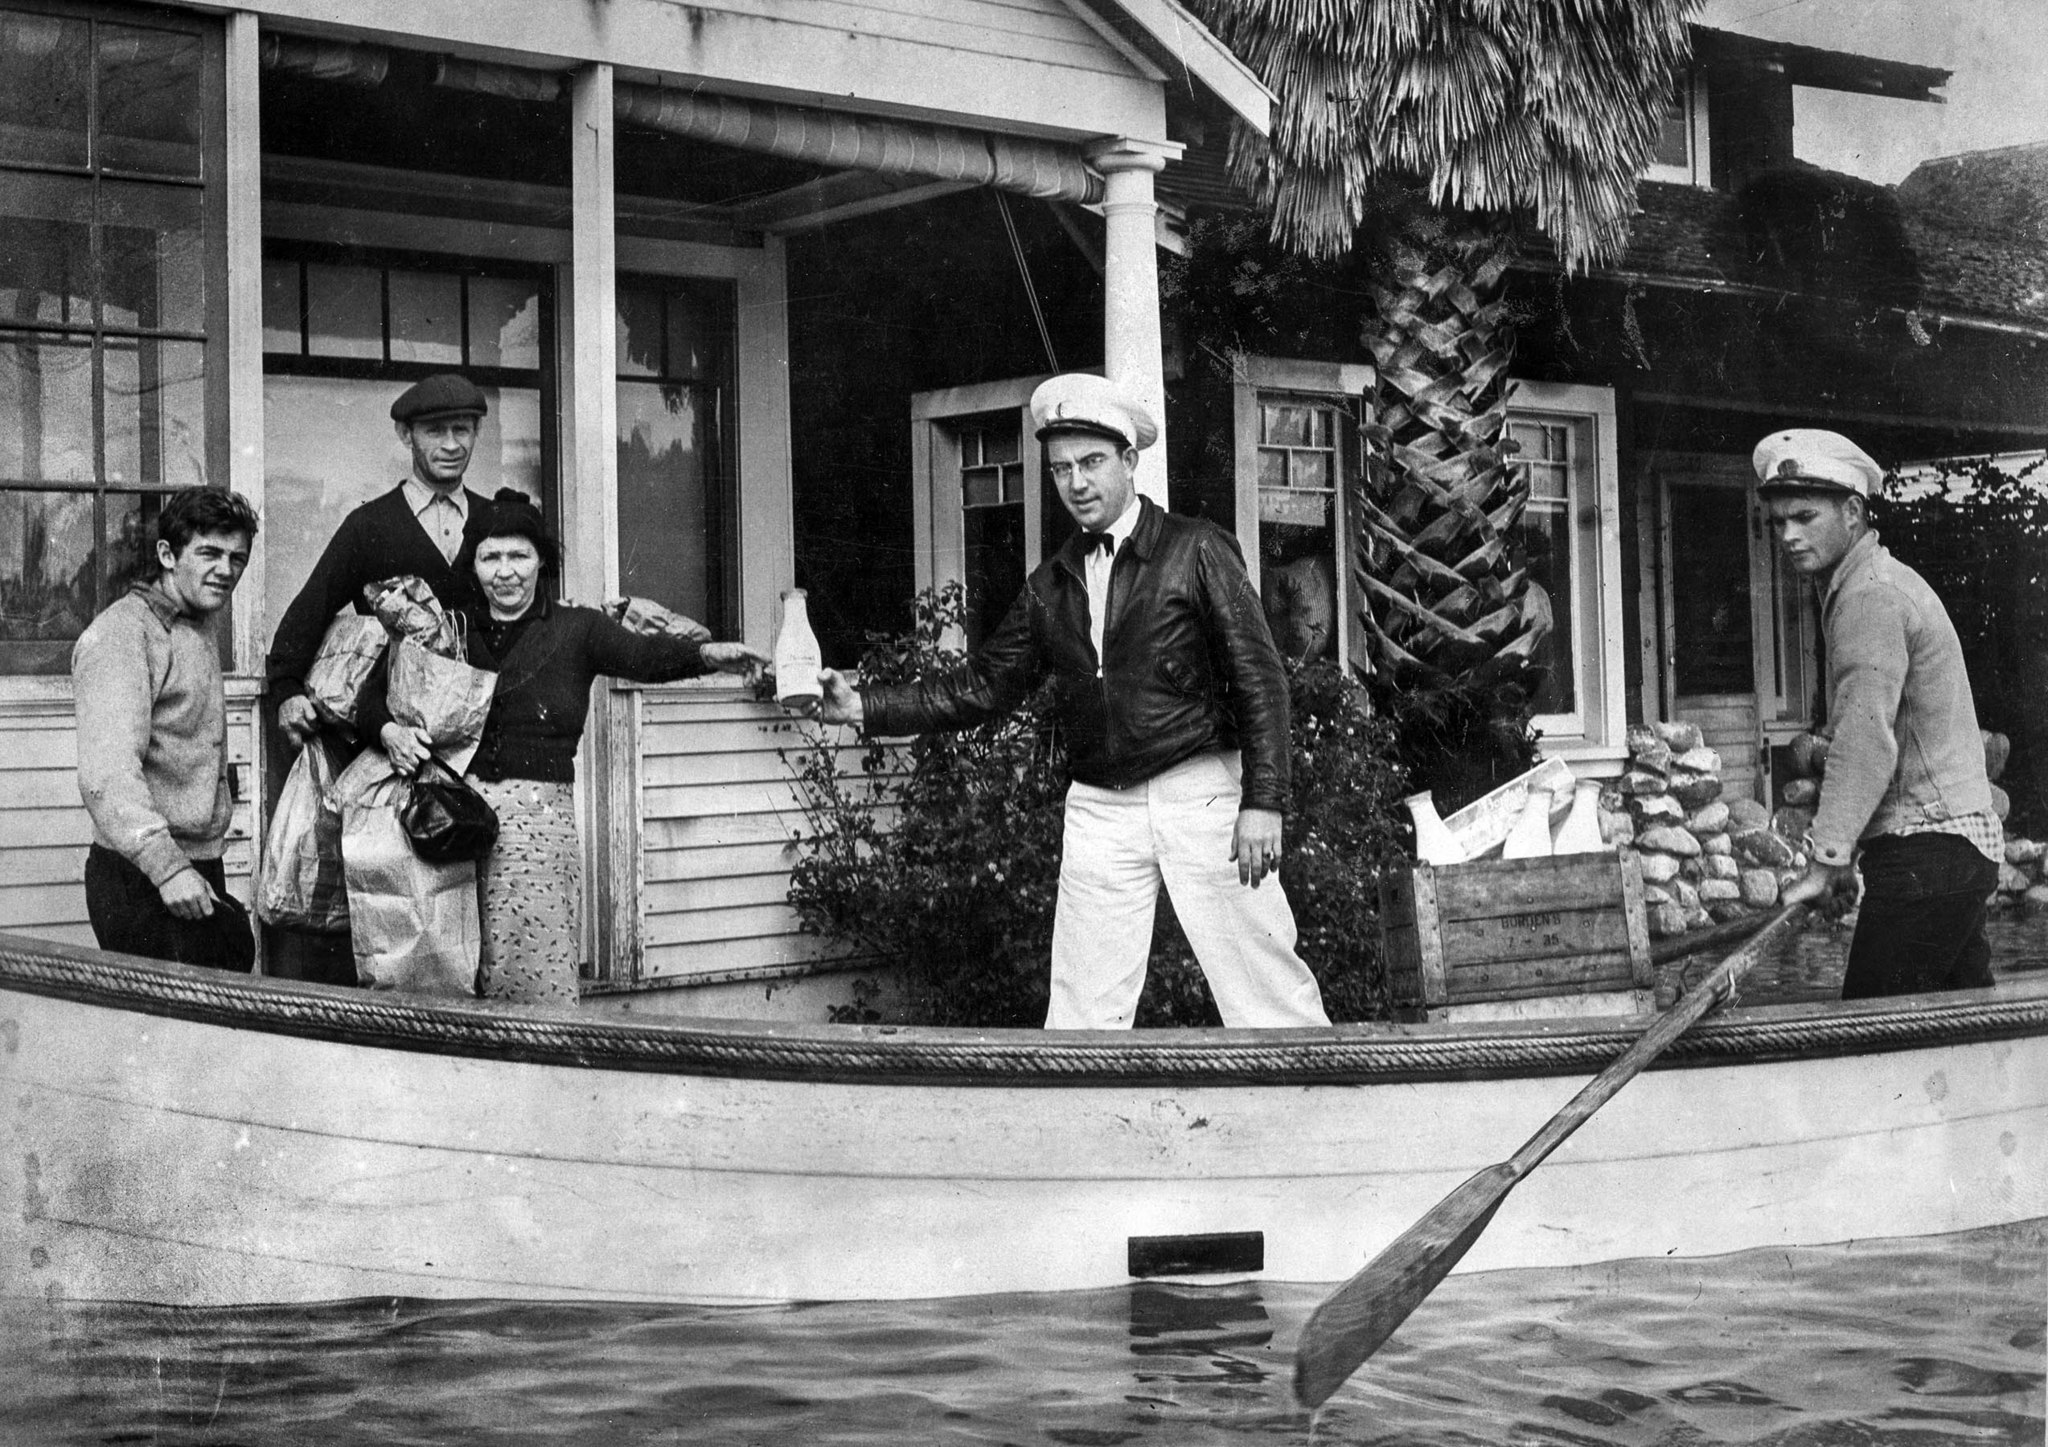 March 3, 1938: Milkman Ray J. Henville secured himself a boat and boatman and made all deliveries on